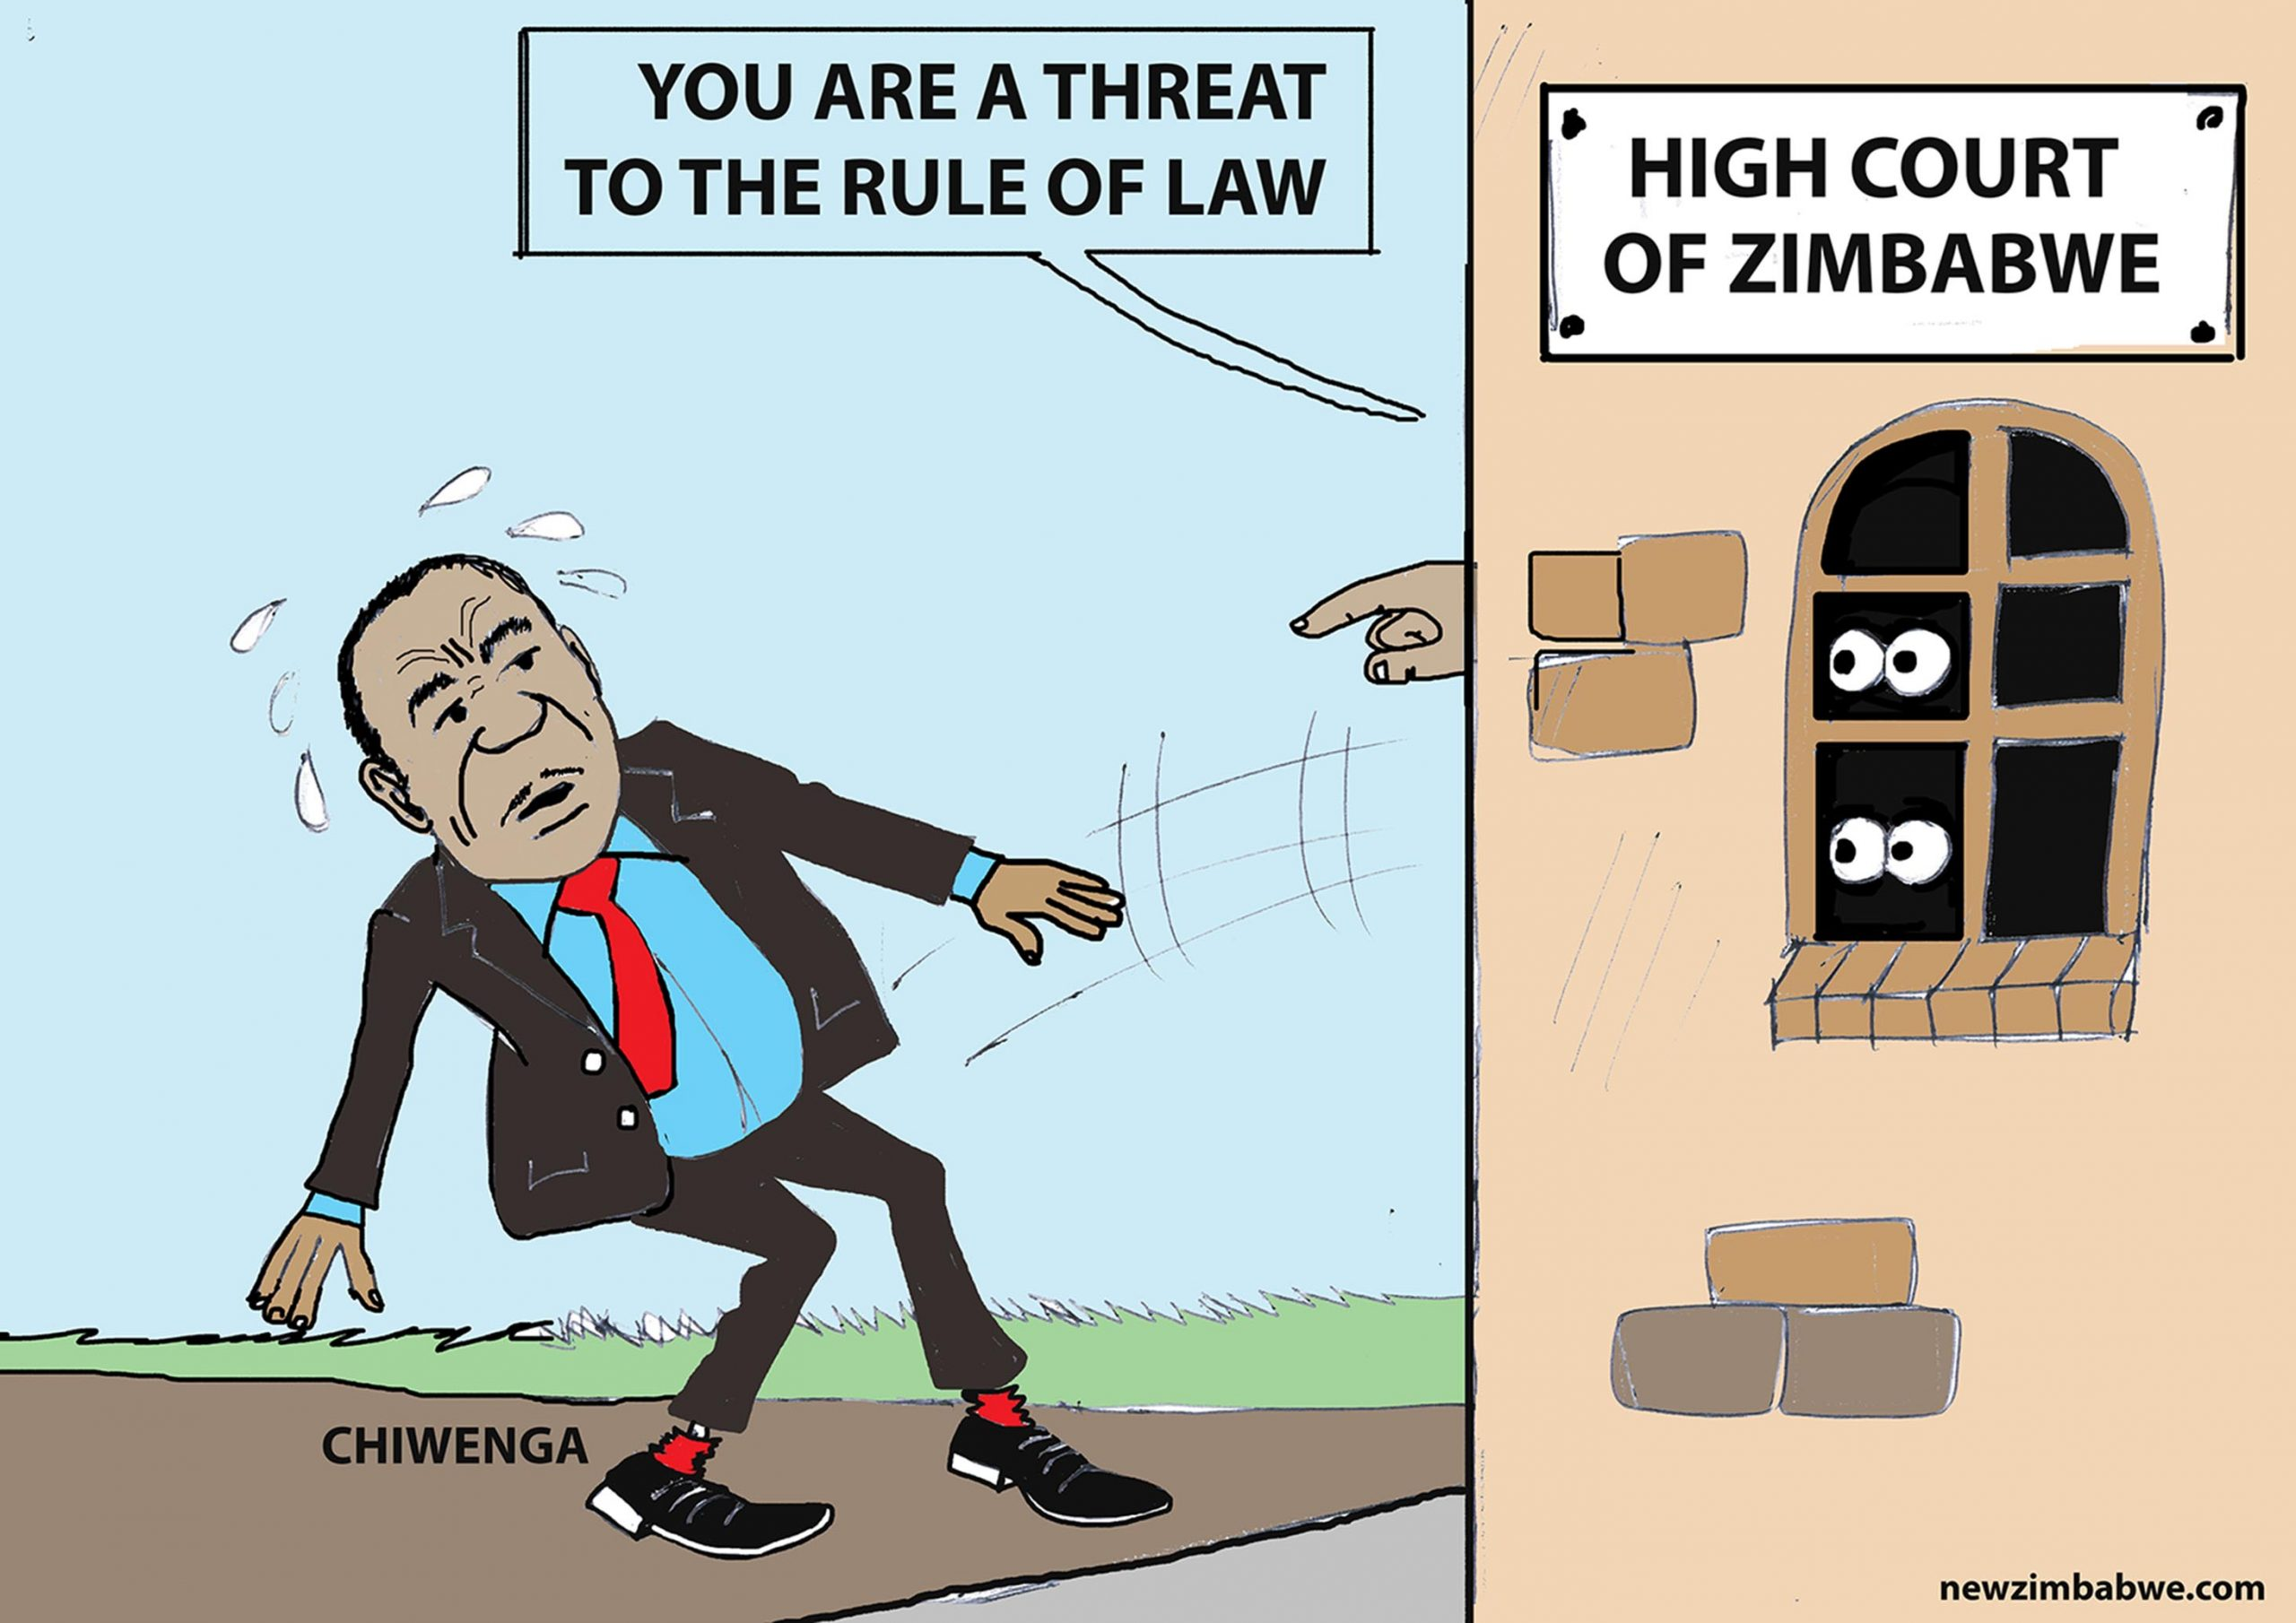 Chiwenga is a threat to rule of law